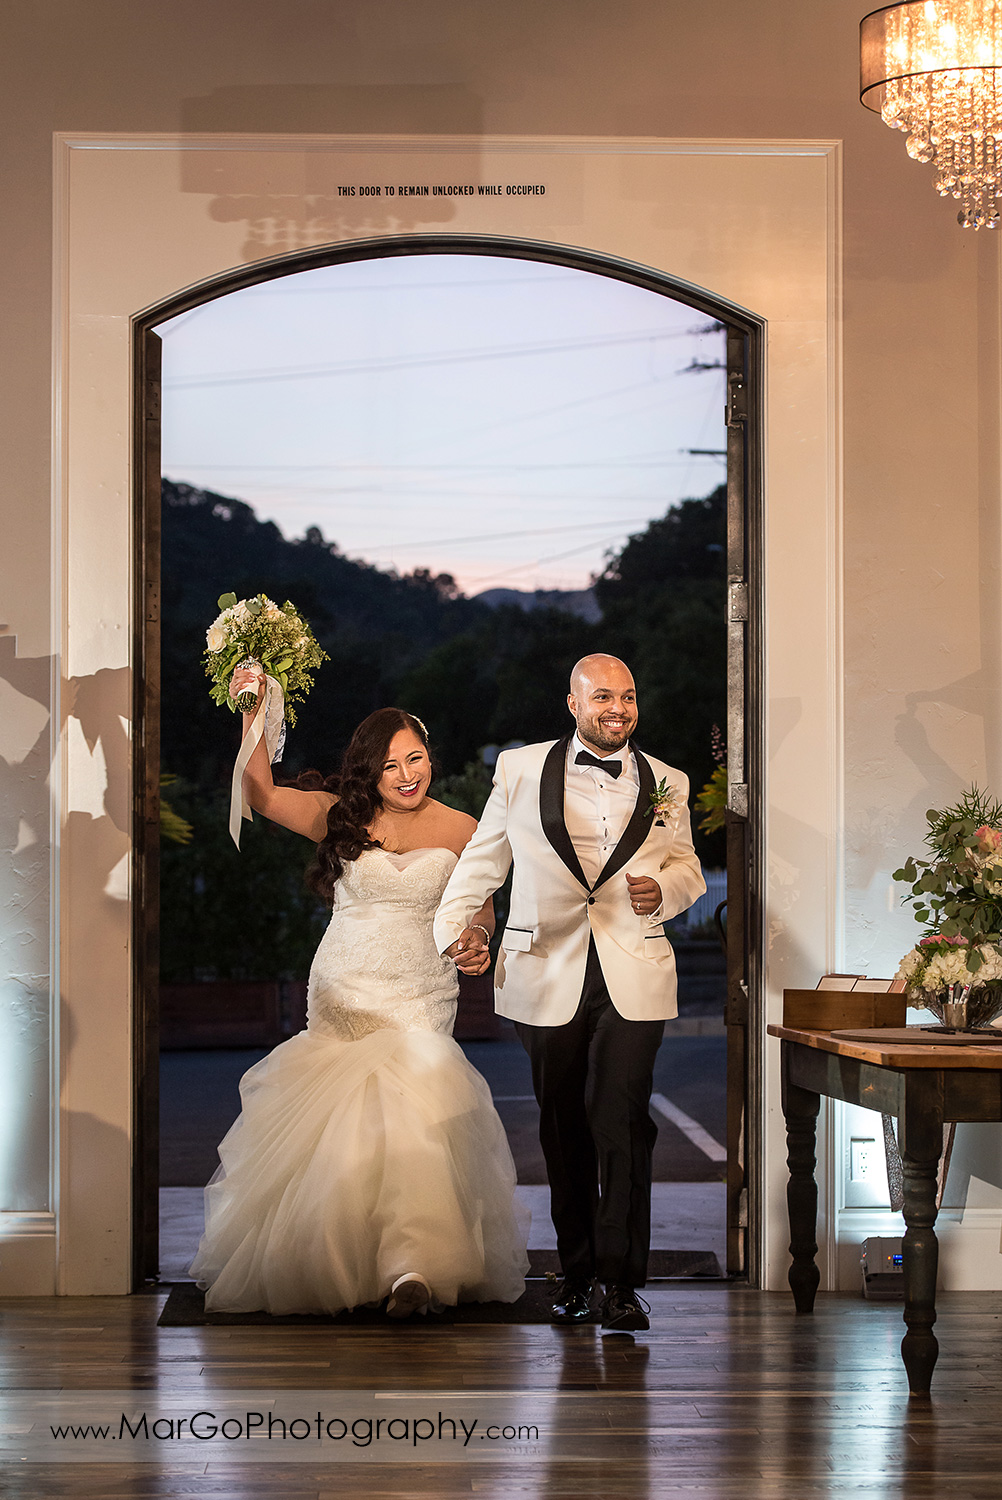 grand entrance - bride and groom walking into reception site at Sunol's Casa Bella